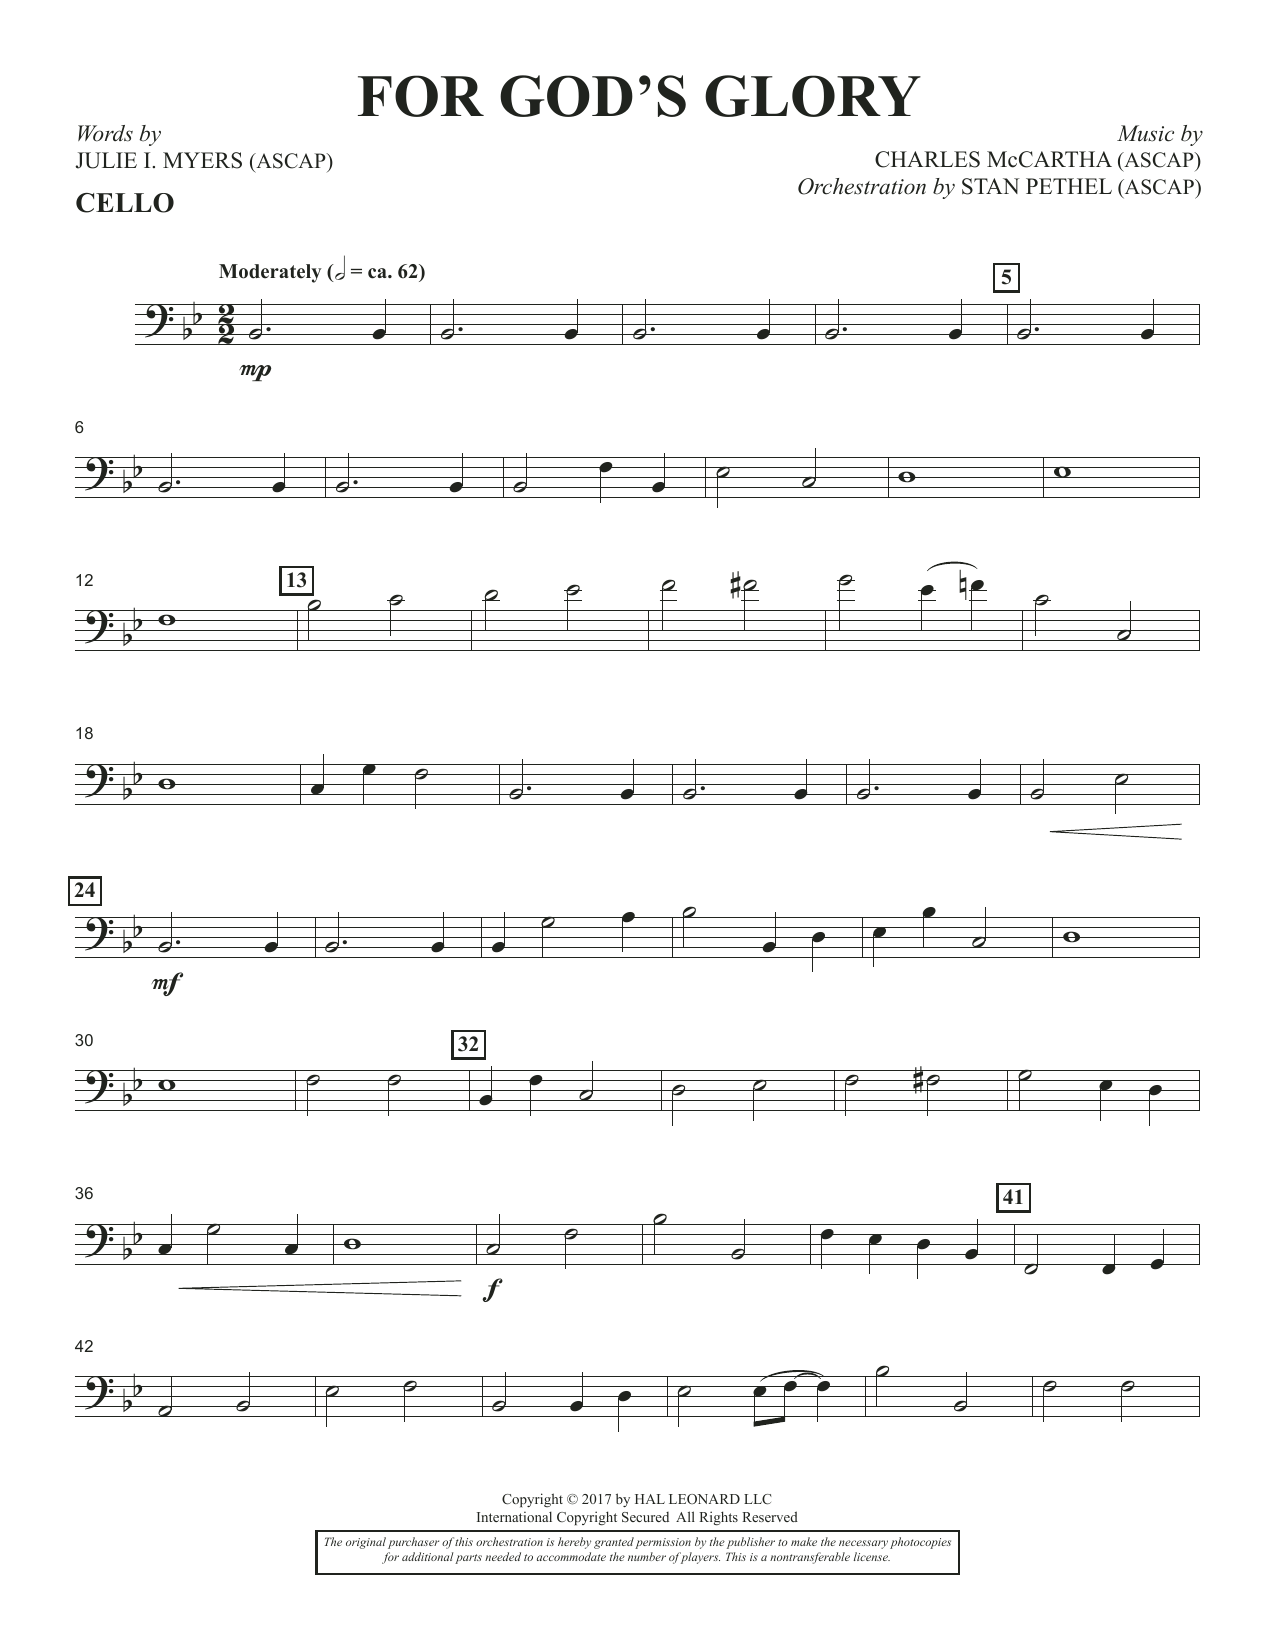 Charles McCartha For God's Glory - Cello sheet music notes and chords. Download Printable PDF.